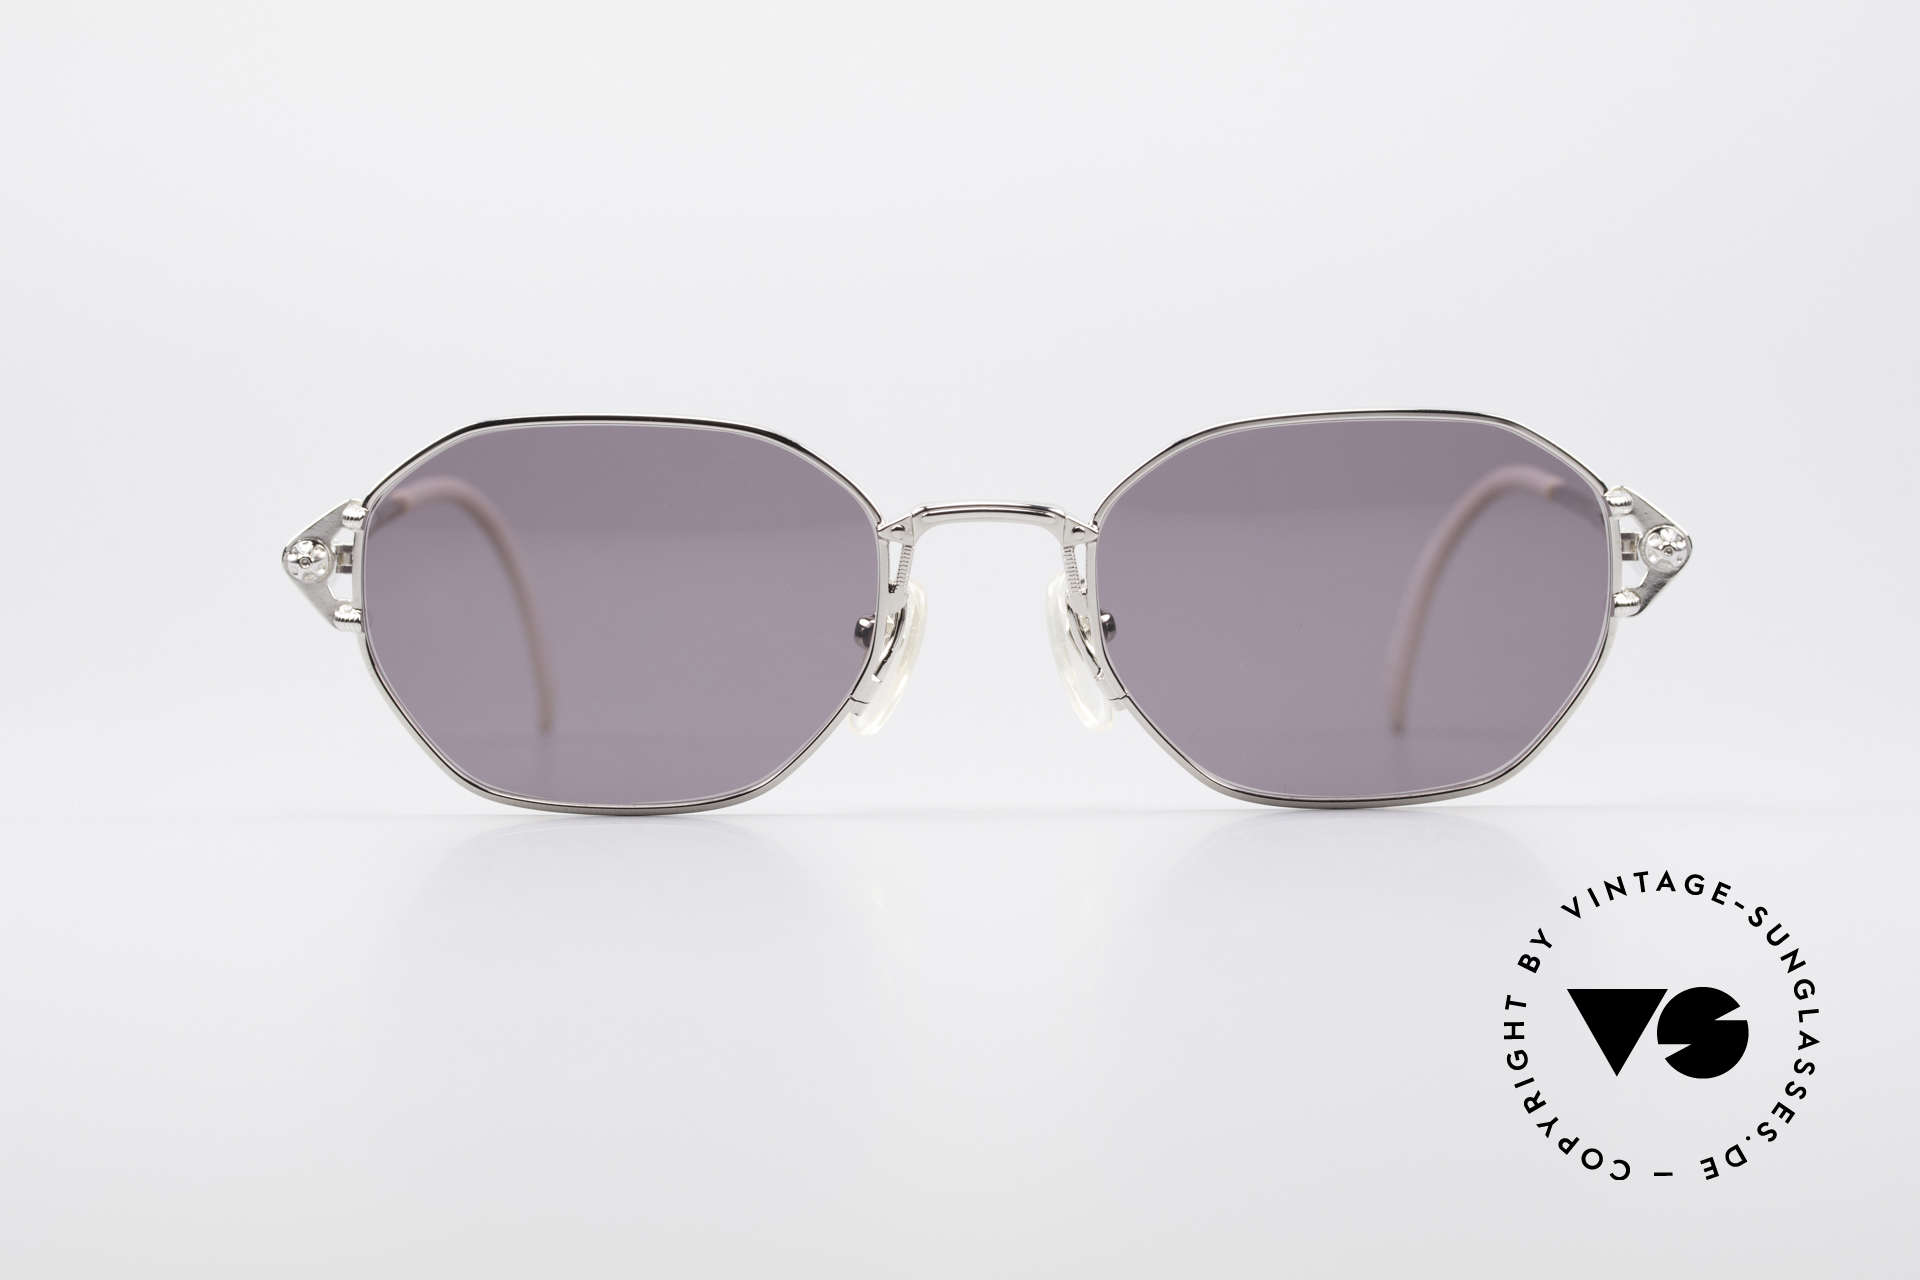 Jean Paul Gaultier 55-6106 90's Vintage Sunglasses, lightweight frame with many fancy details (check pics), Made for Men and Women